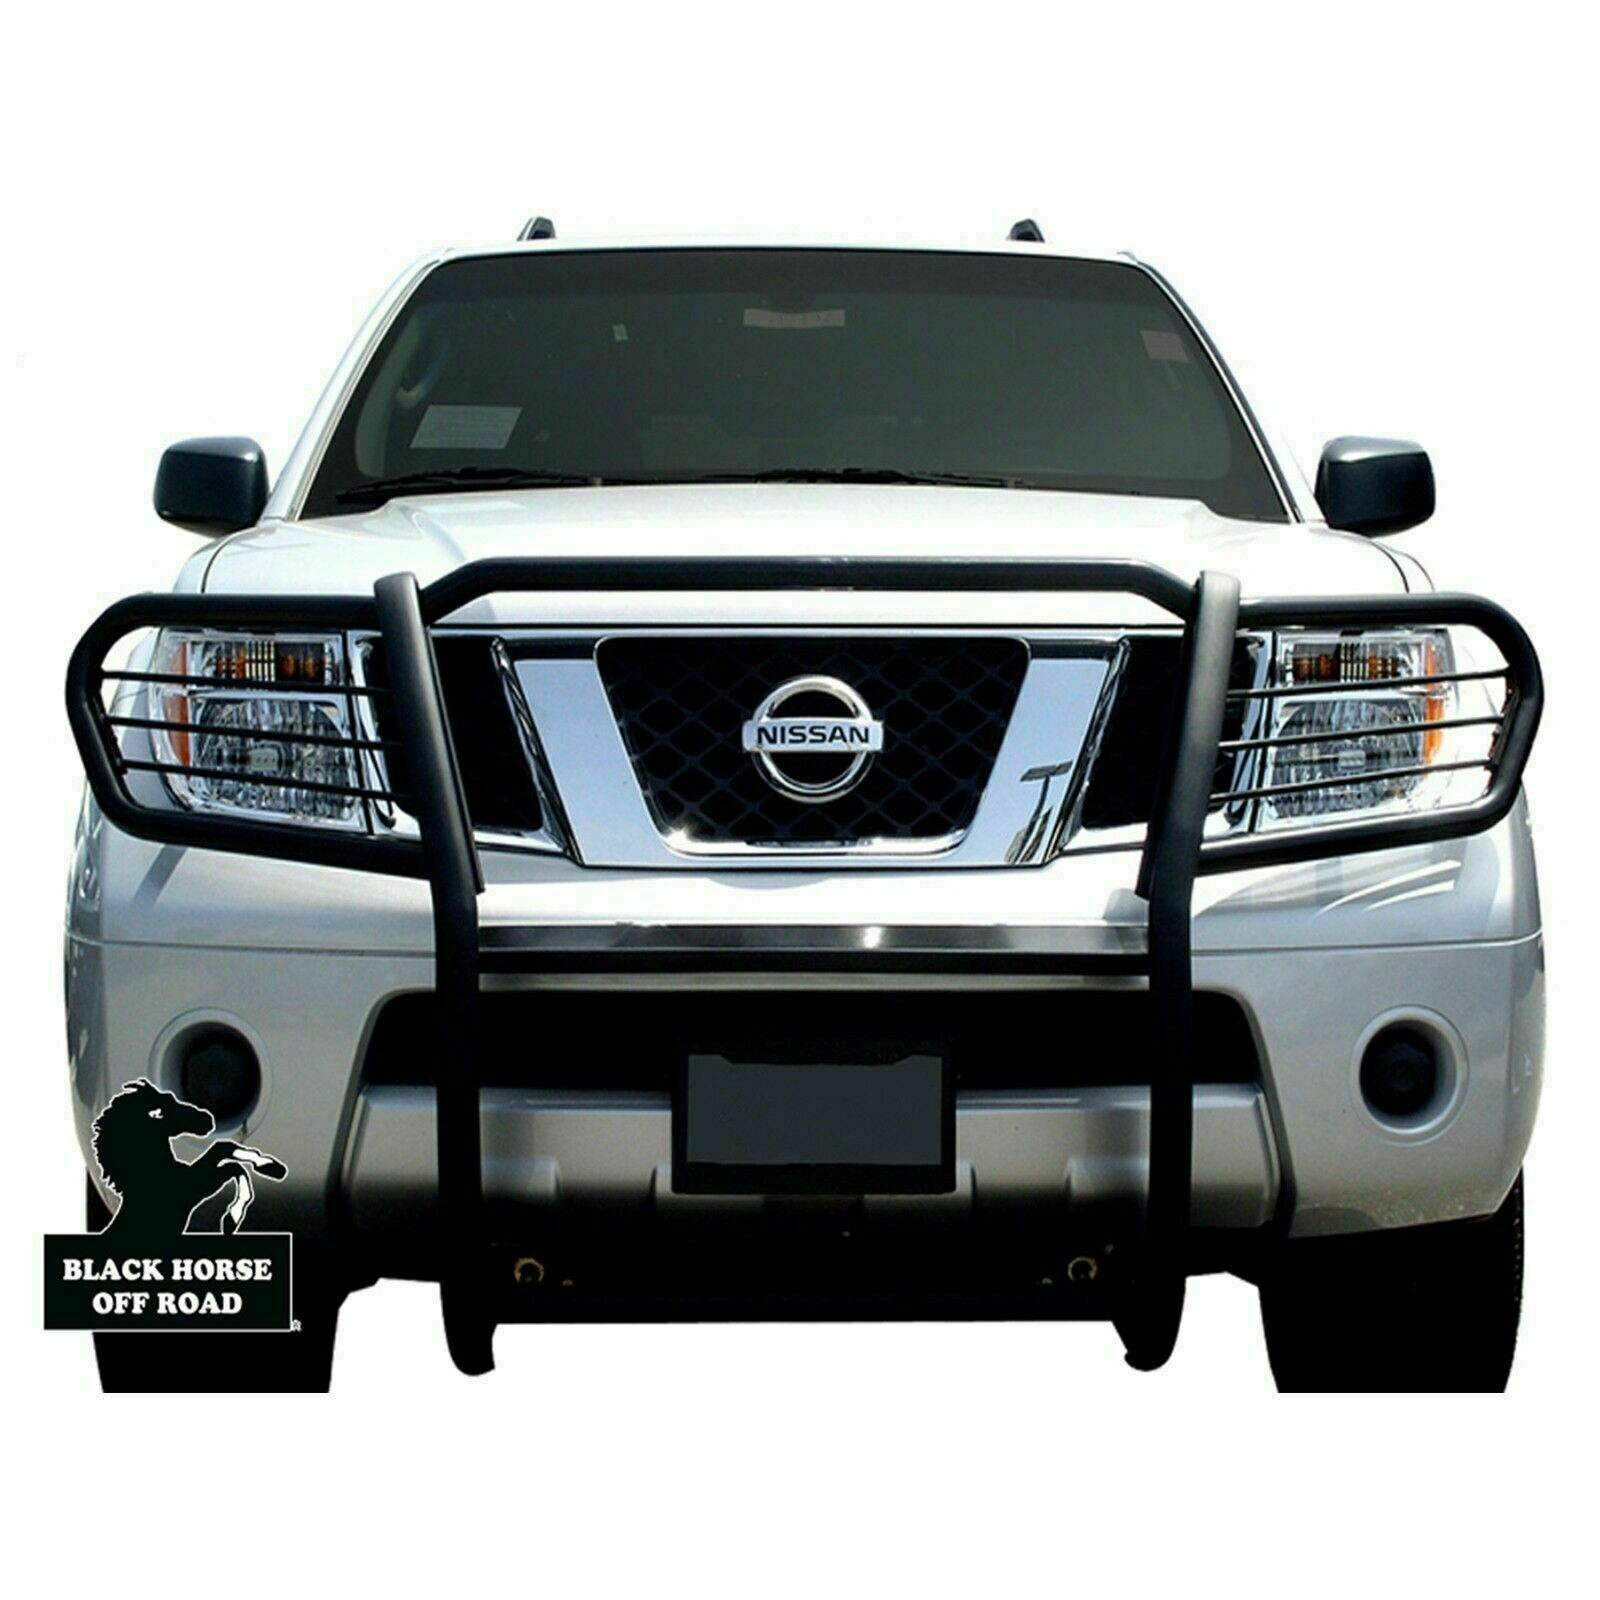 black horse fits 05 20 nissan frontier black grille brush bumper guard crash bar ebay details about black horse fits 05 20 nissan frontier black grille brush bumper guard crash bar